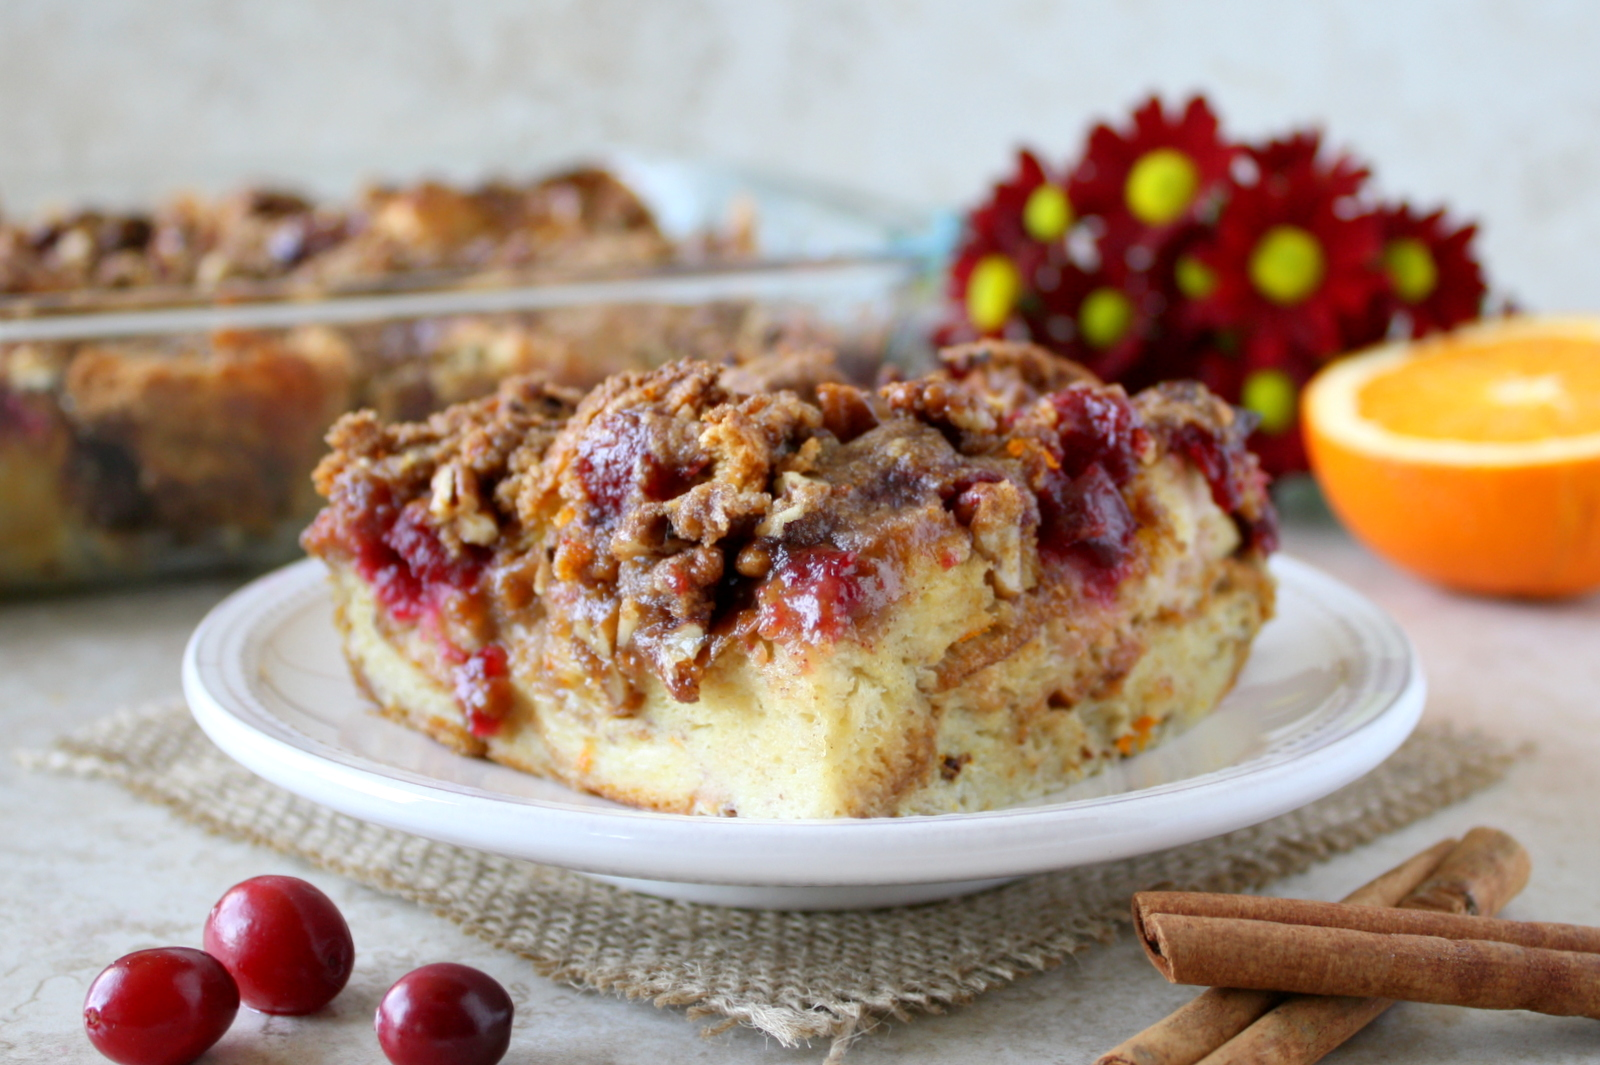 cranberry orange French toast casserole #SameSilkySmoothTaste #shop